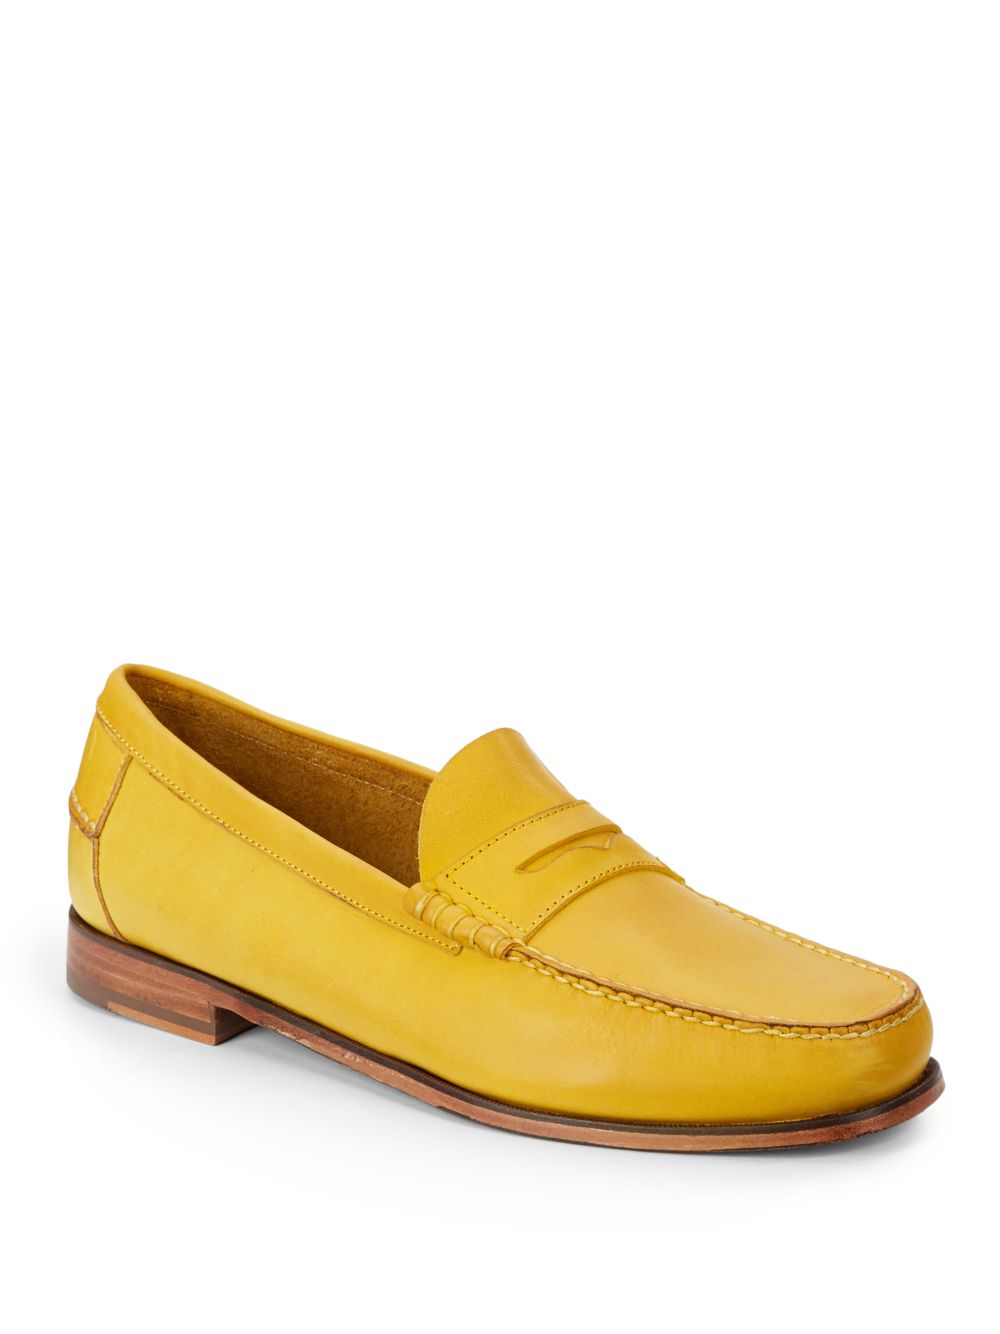 Lyst Florsheim By Duckie Brown Leather Penny Loafers In